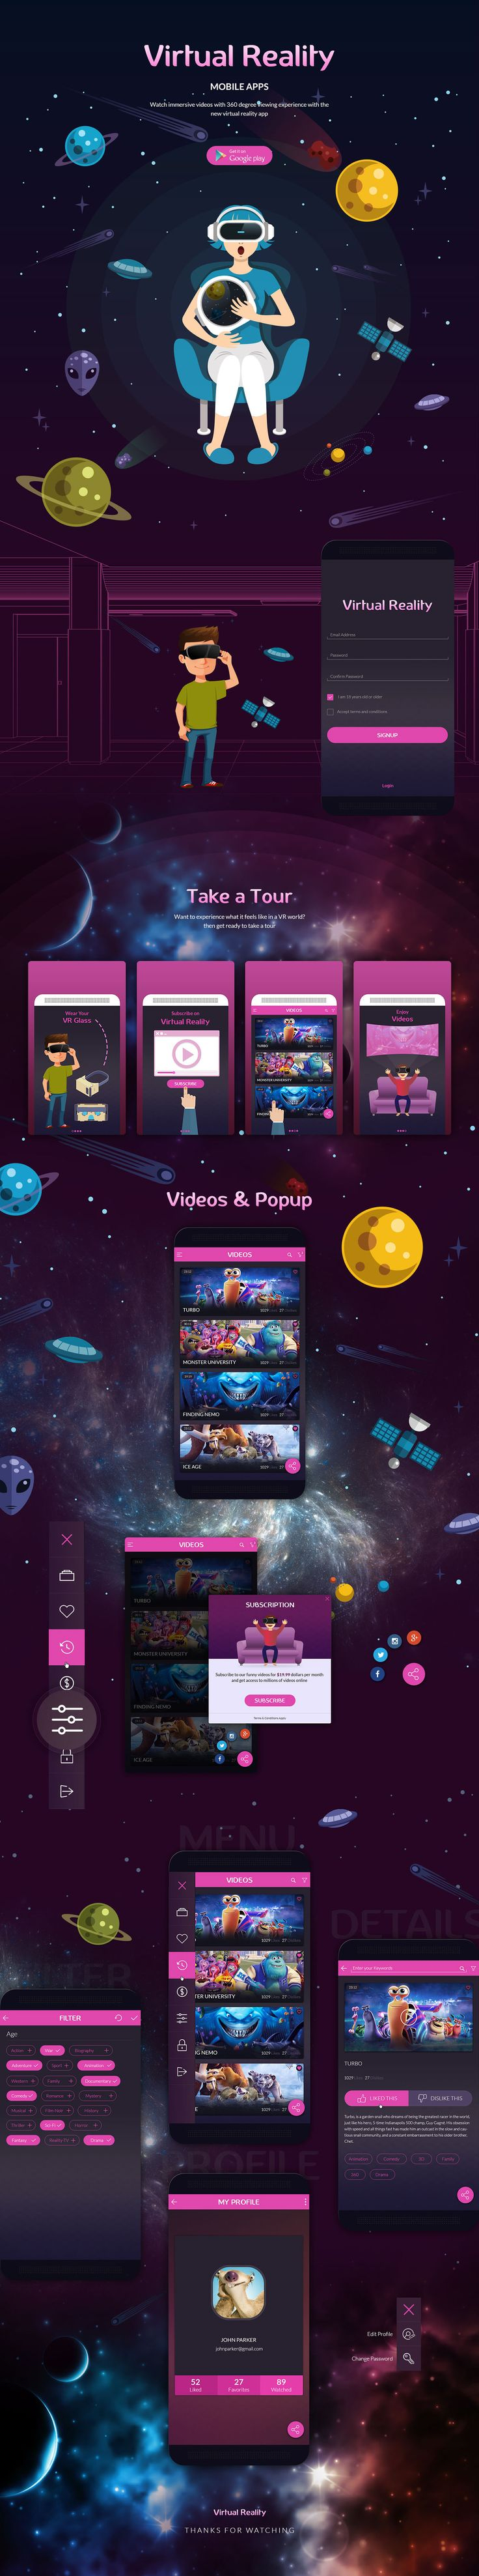 Virtual Reality App on Behance